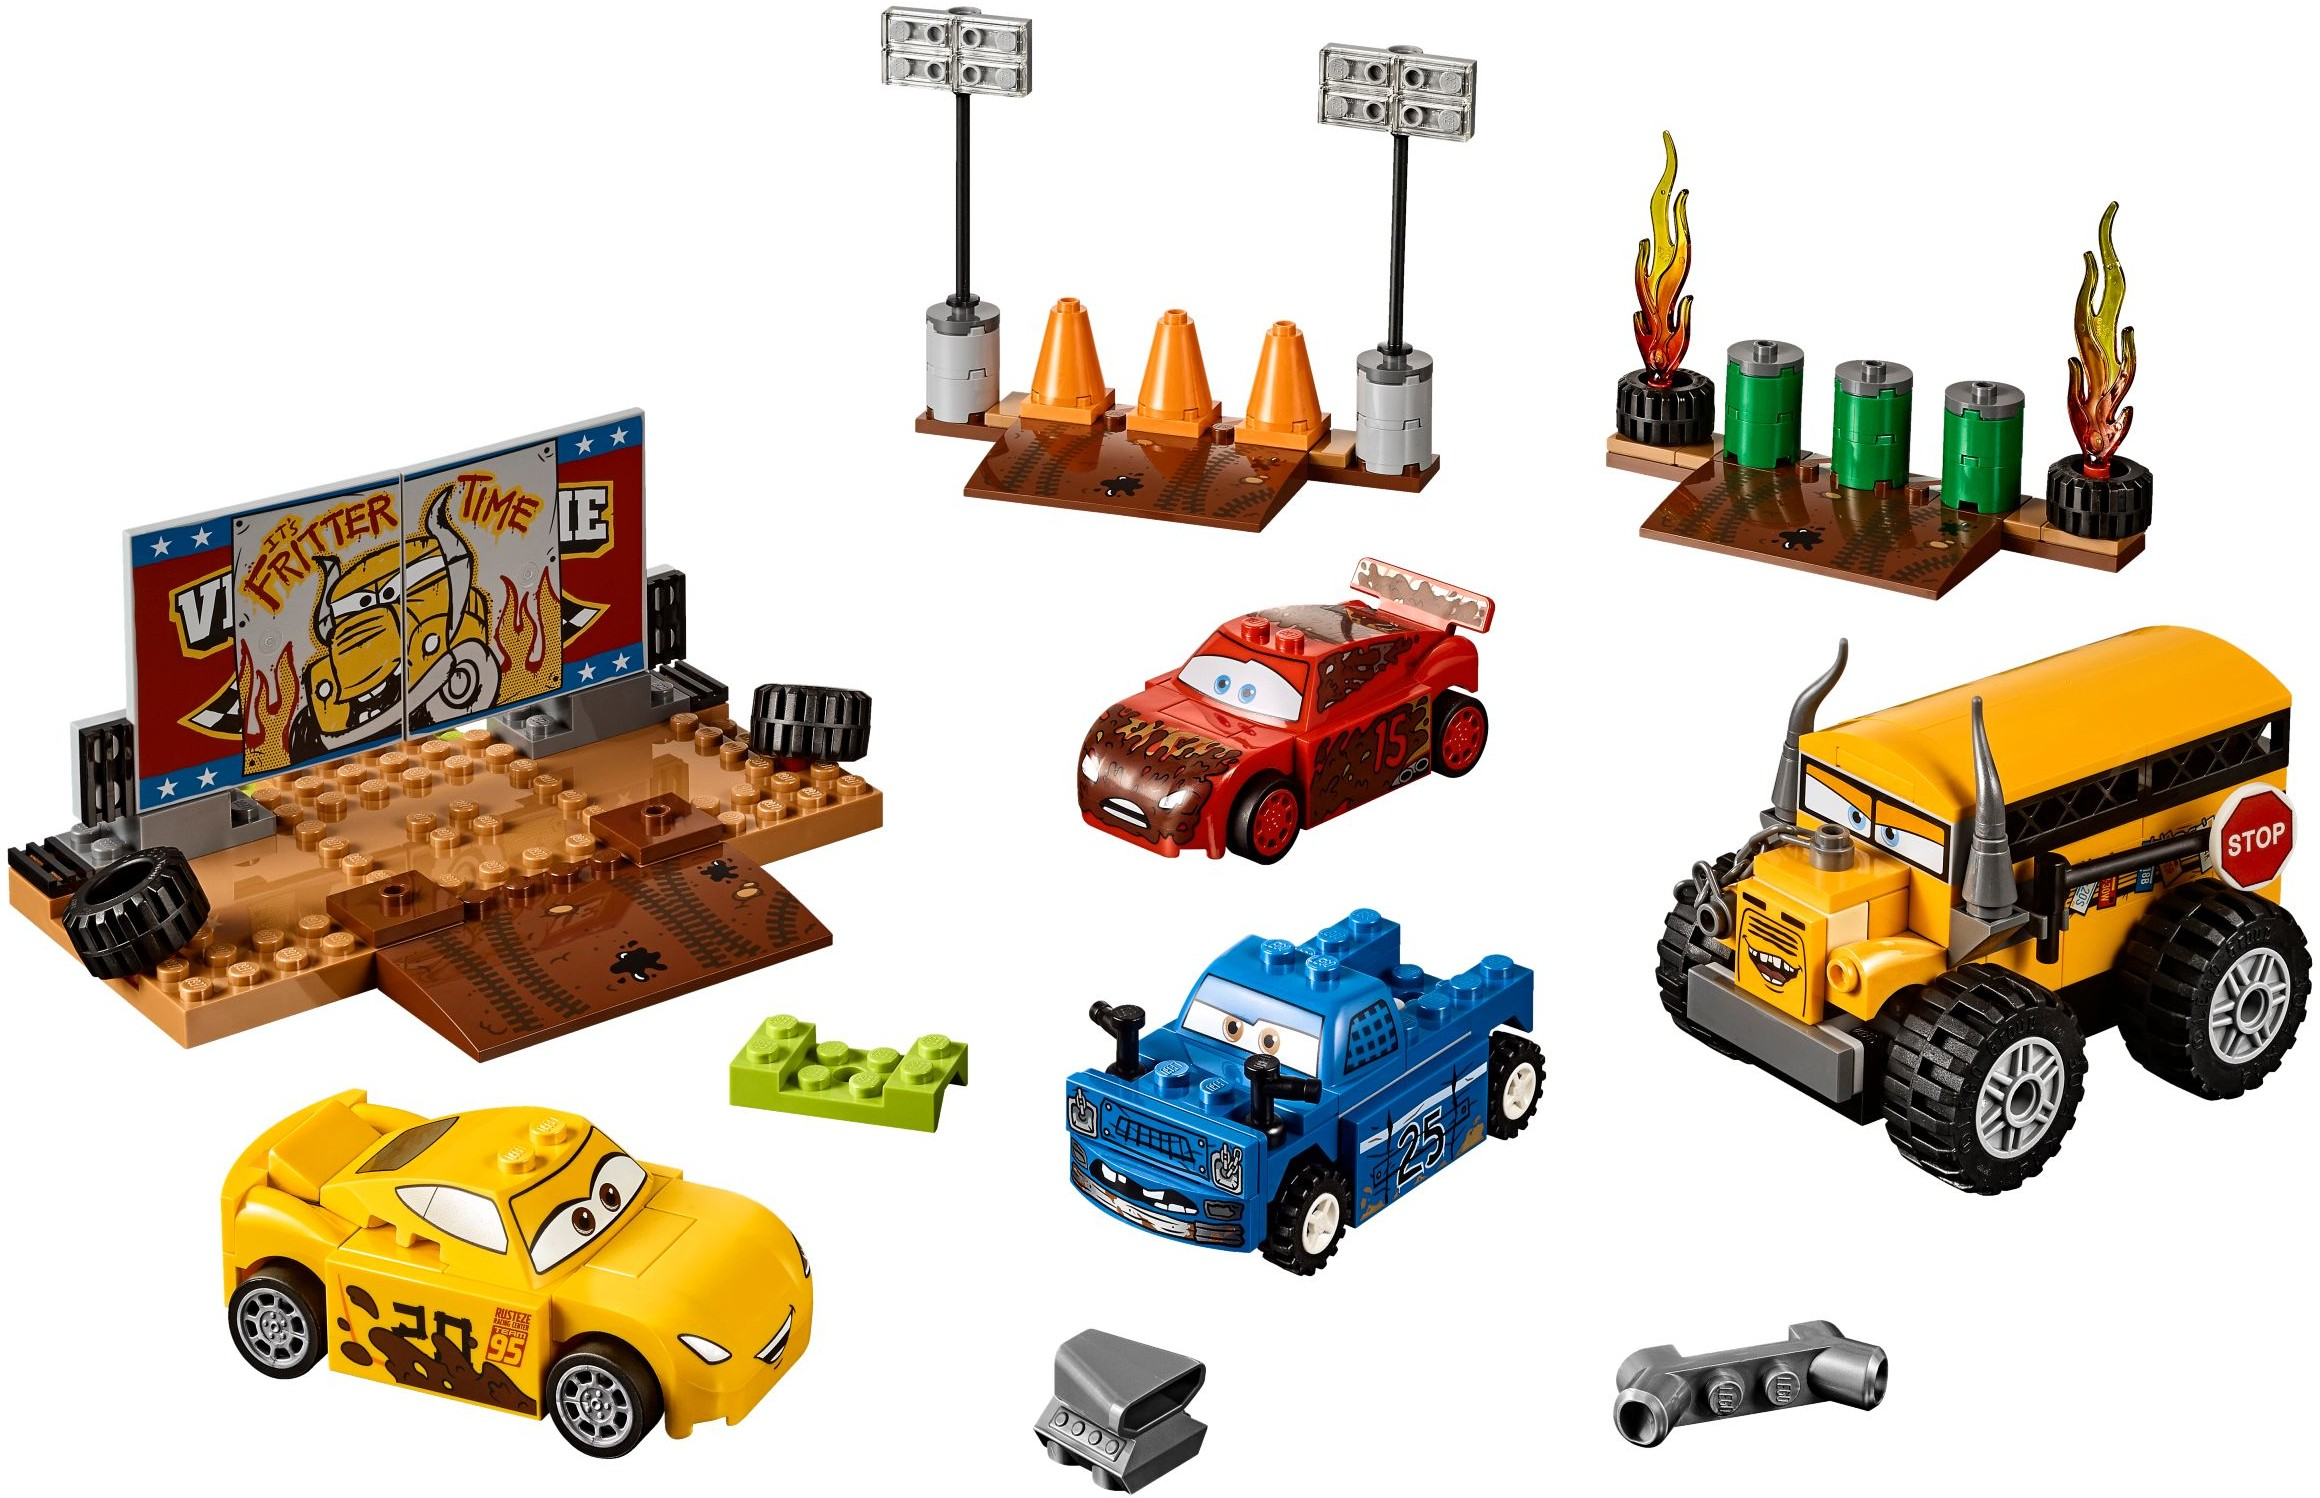 lego city monster truck instructions